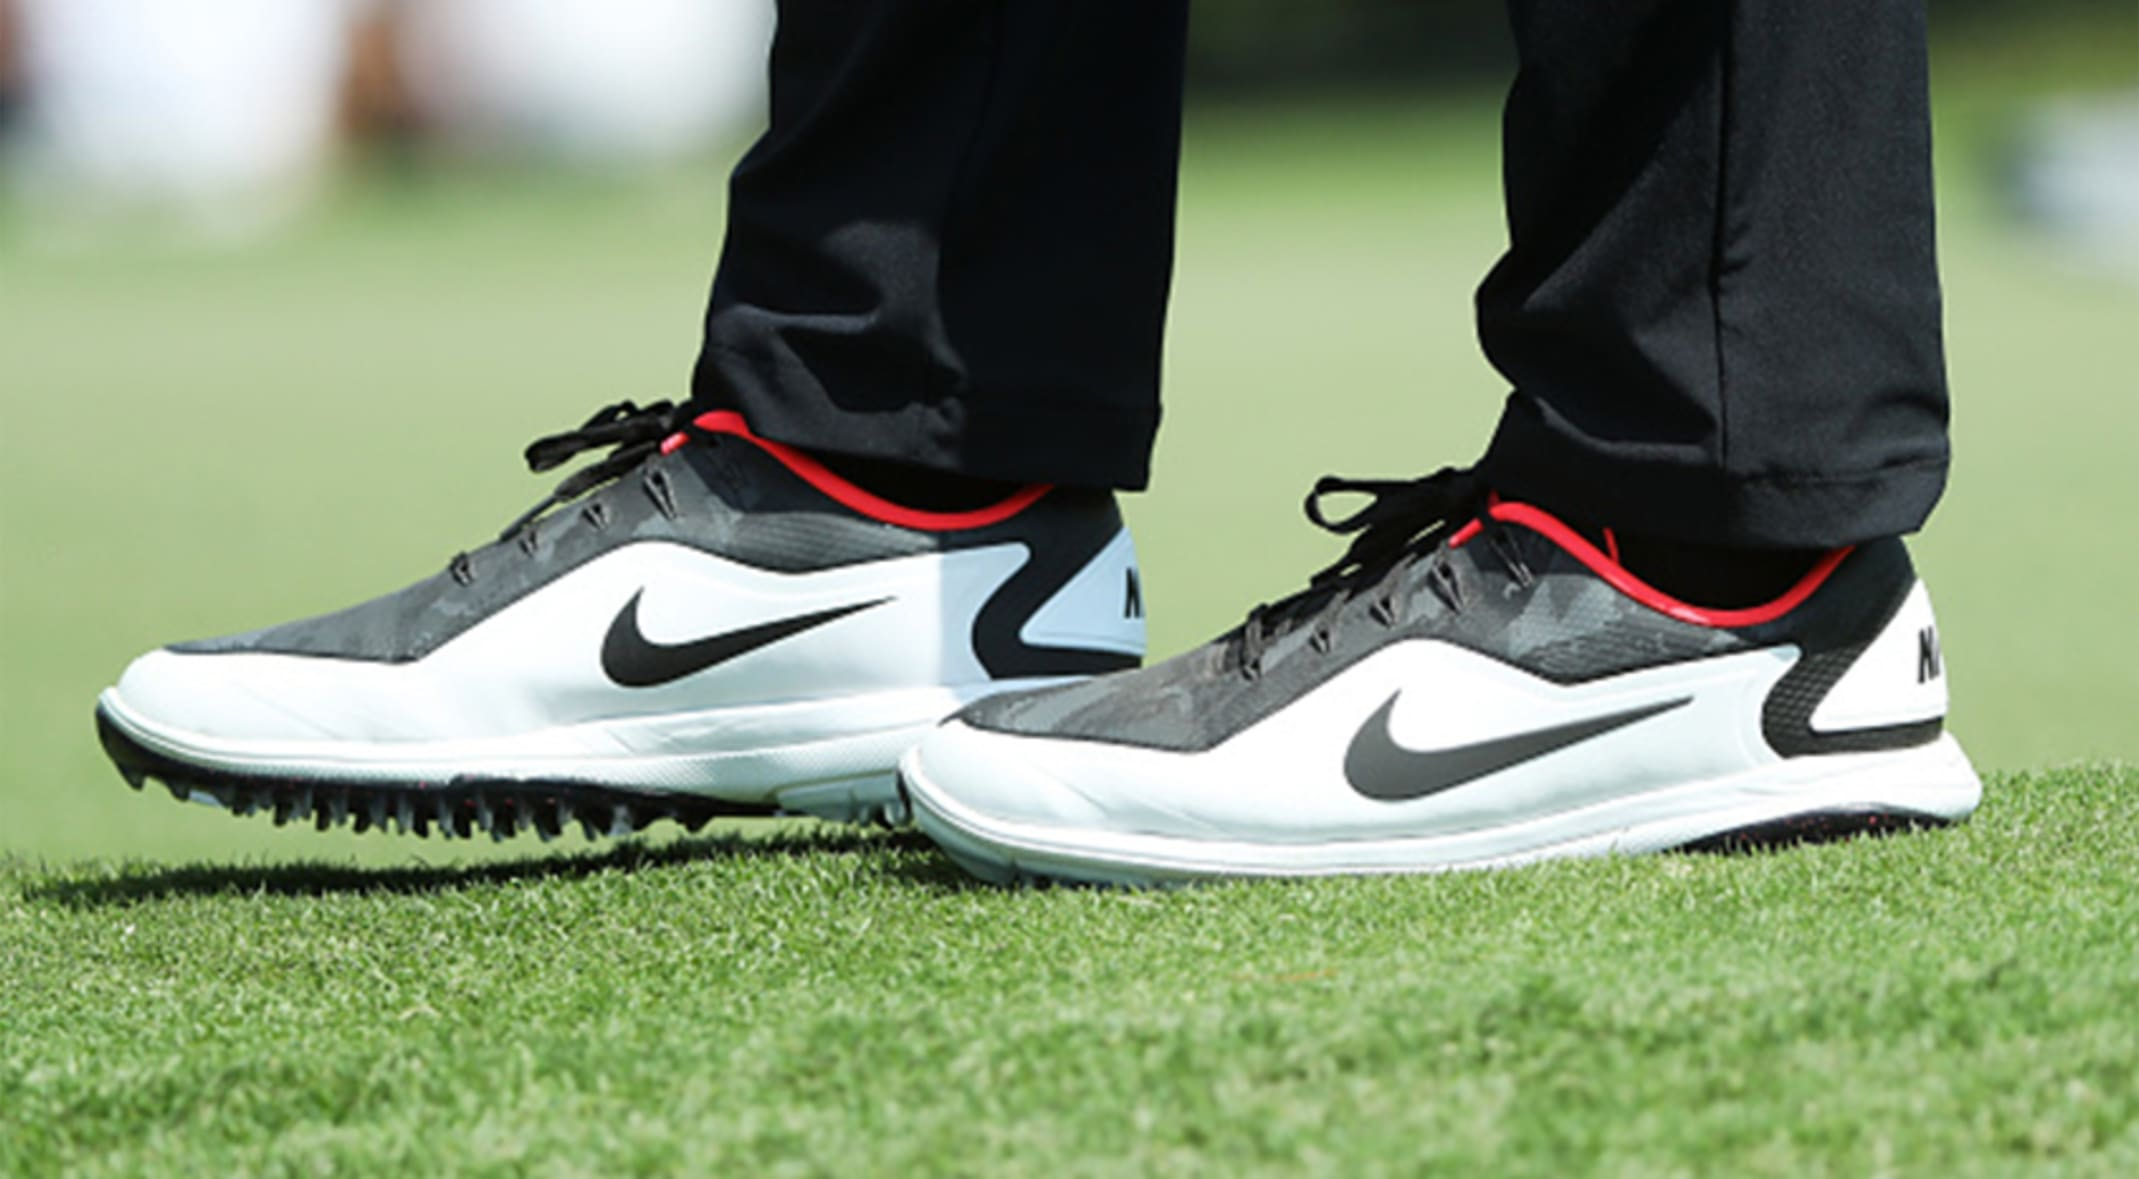 meet 13324 2599f Jason Day showcased the Nike Lunar Control Vapor 2 s during the first round  of the TOUR